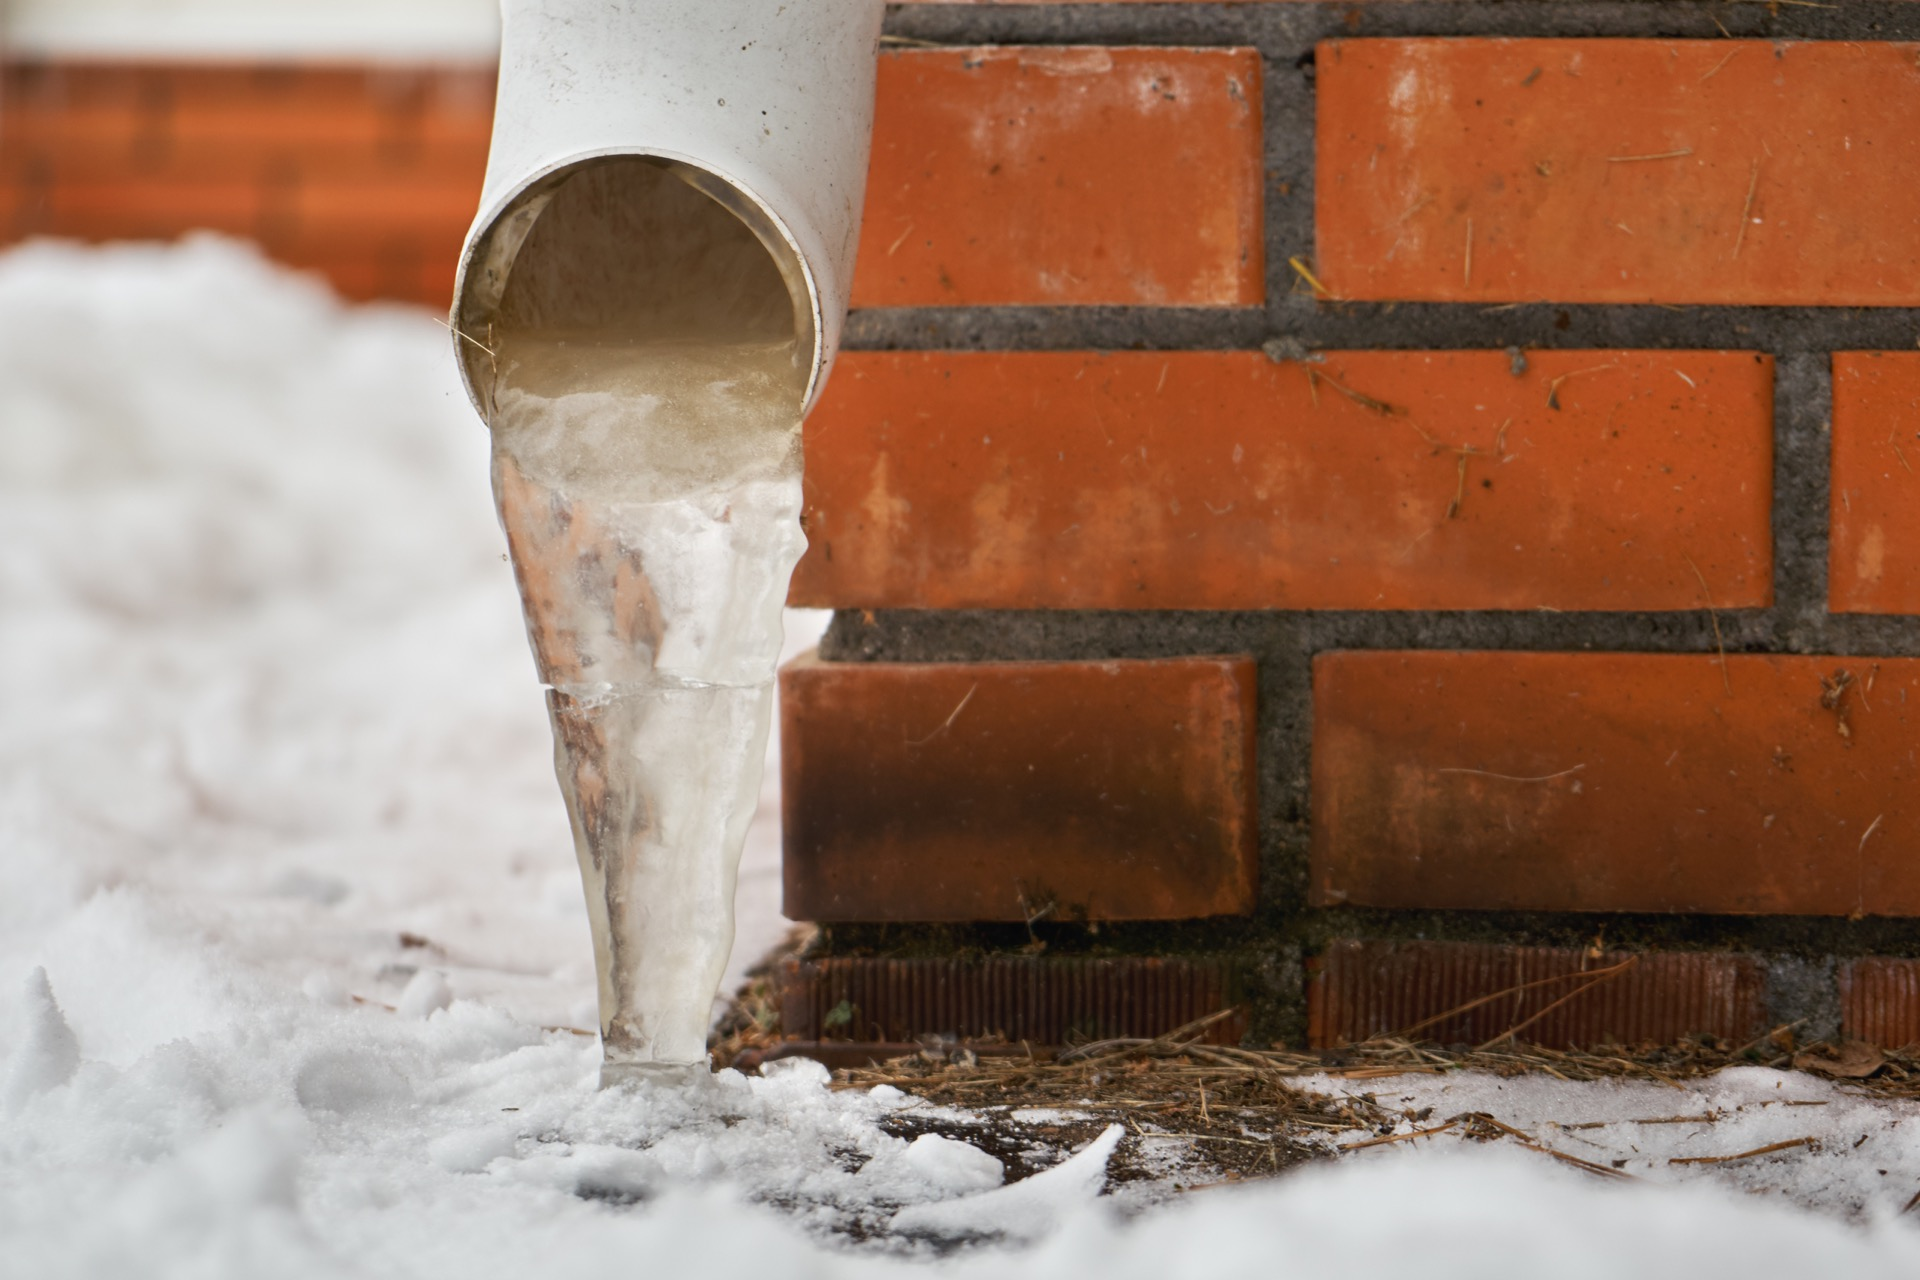 Frozen pipes that lead to septic tank